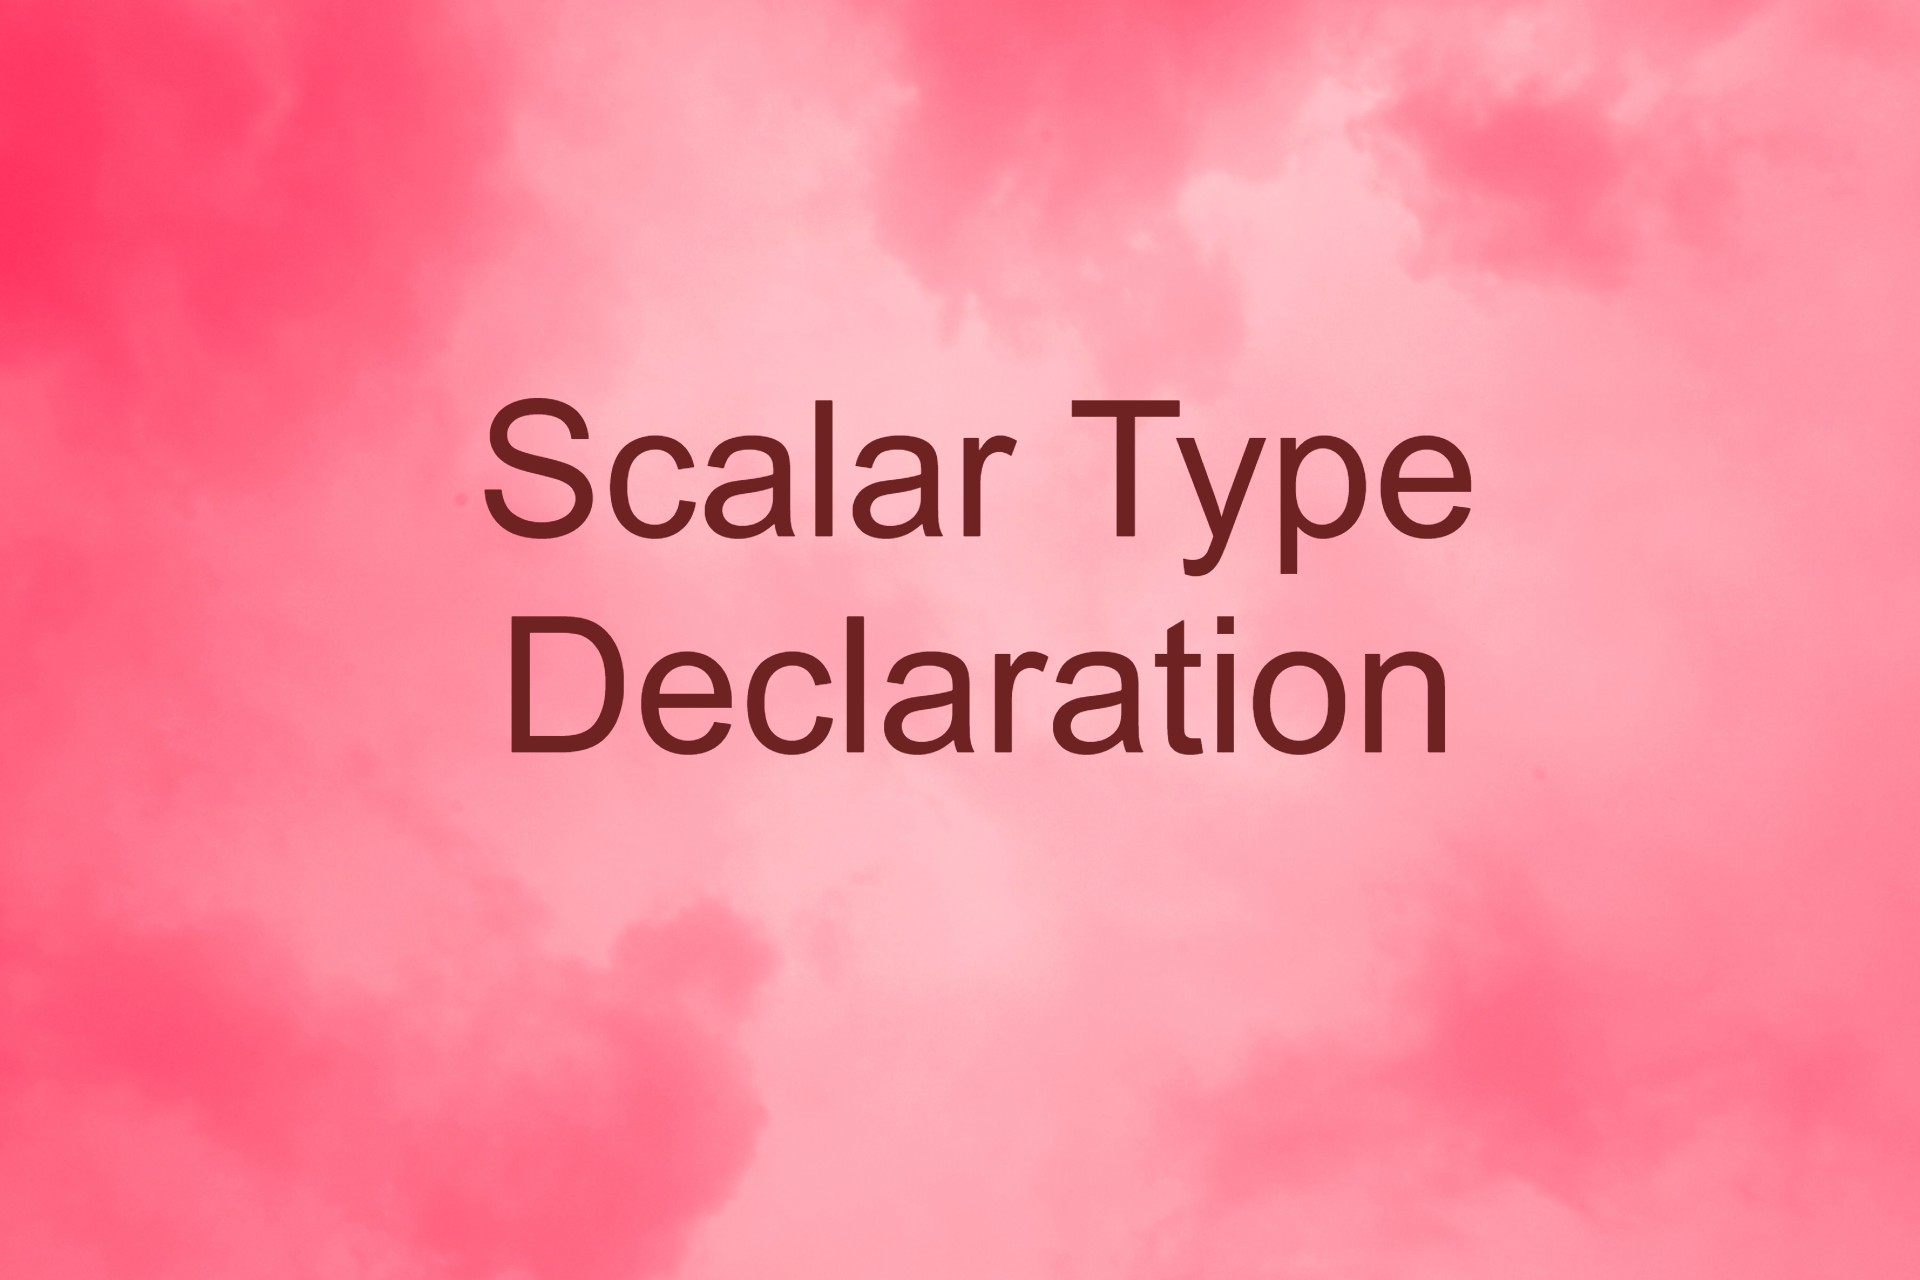 Scalar Type Declaration